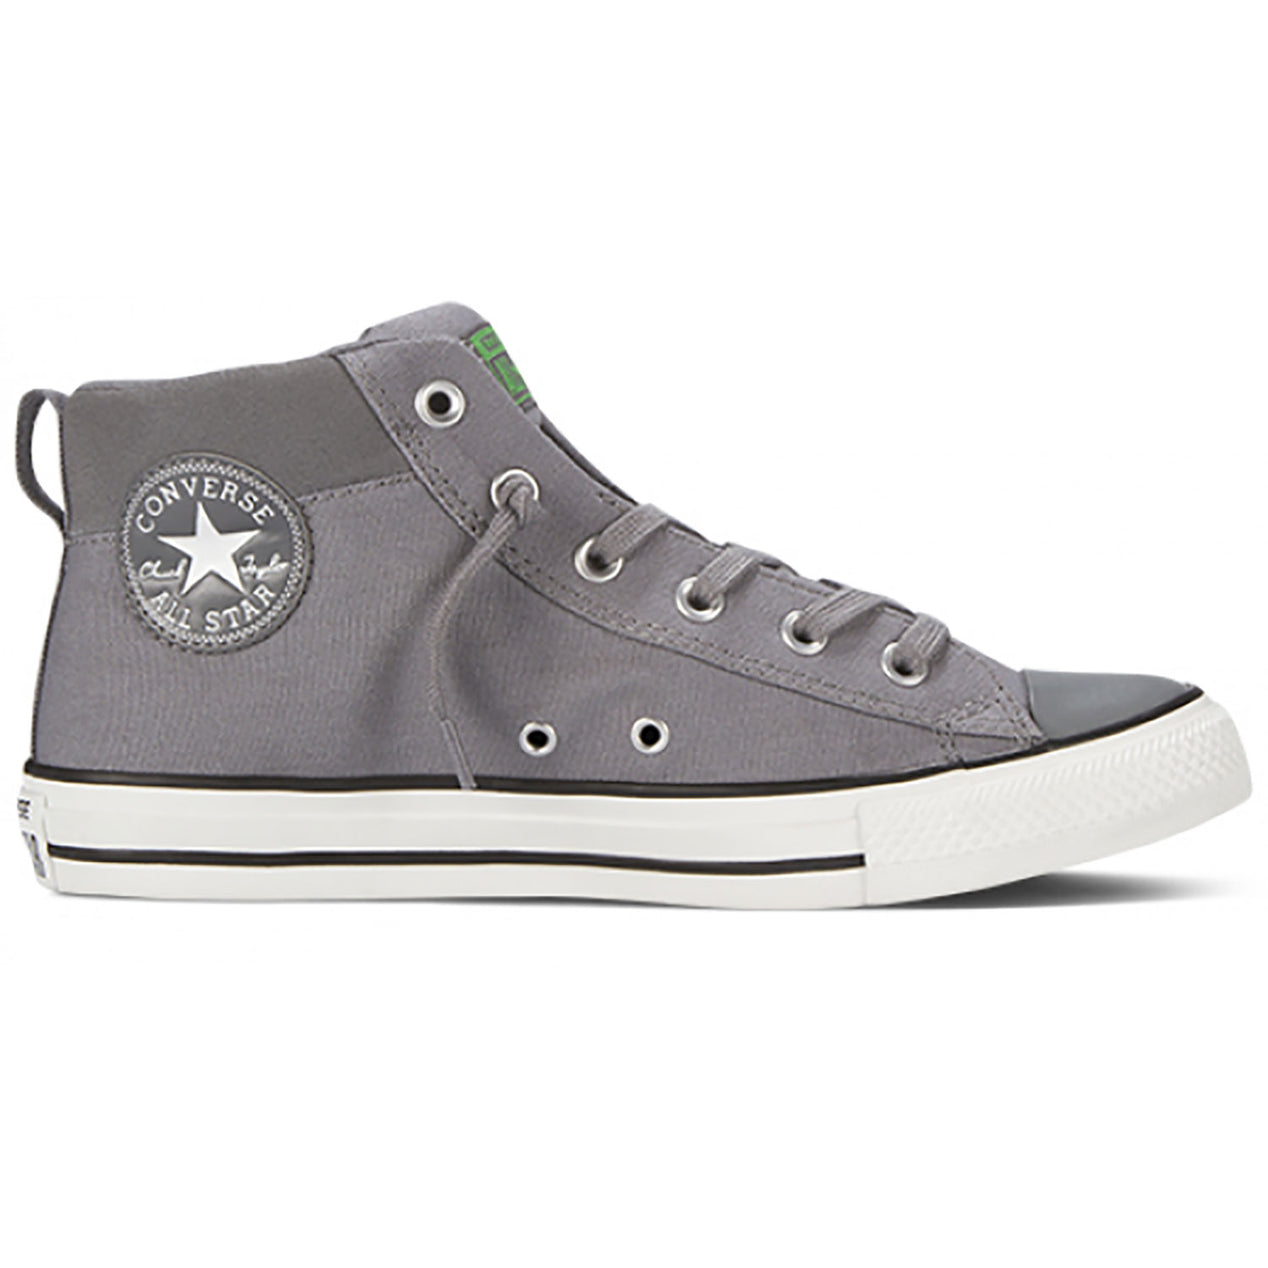 f060e0cde383 Converse Men s Chuck Taylor All Star Canvas - Suede Street ...